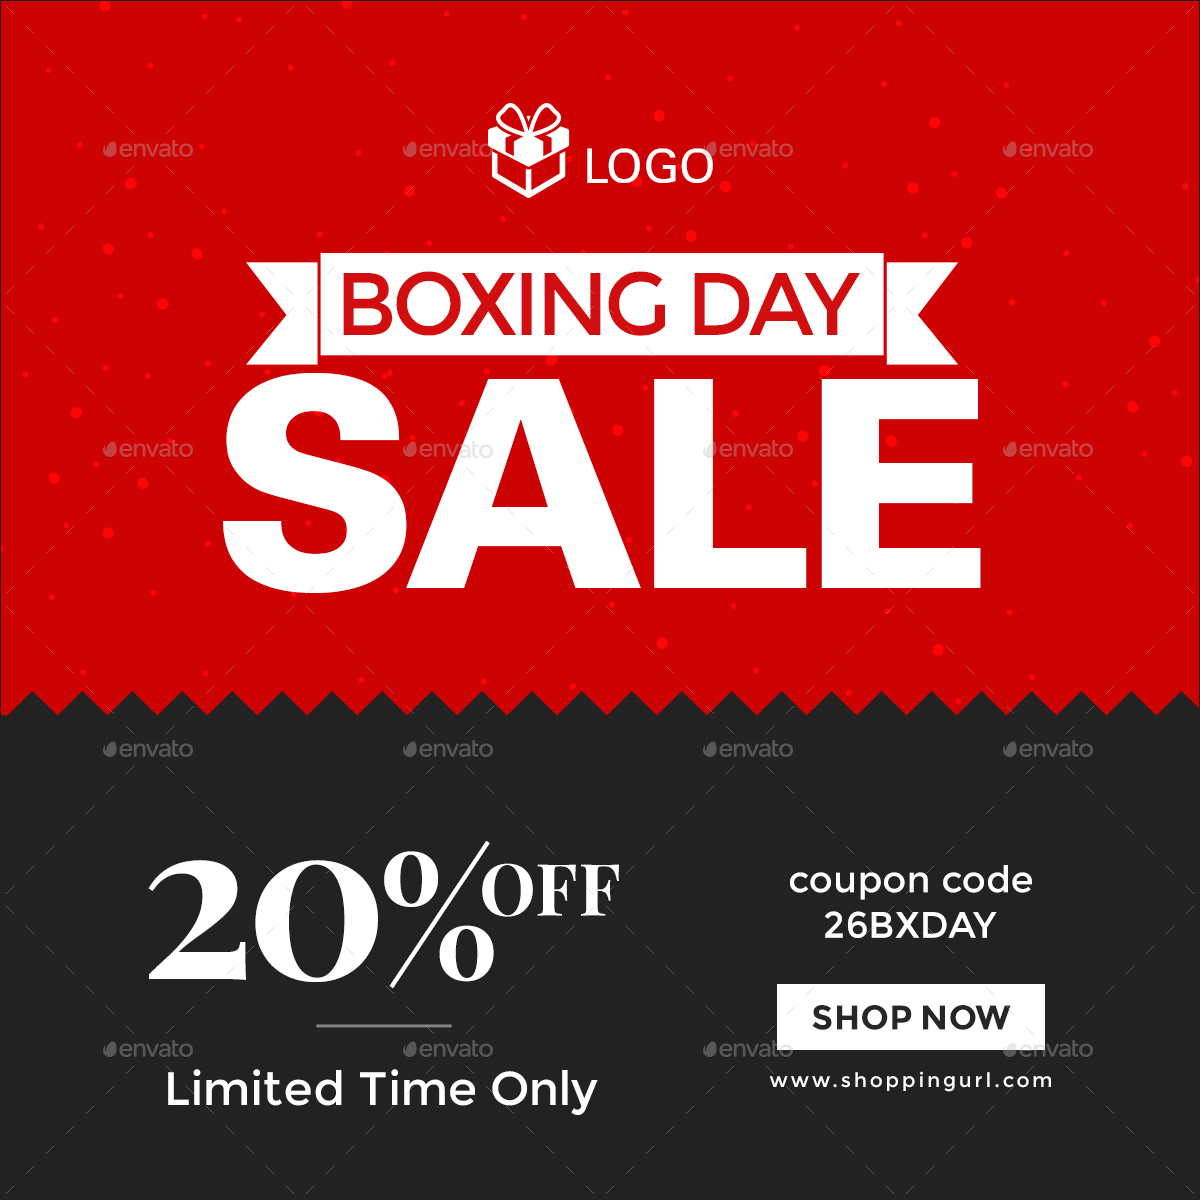 BEE 1859 Boxing Day Sale Banners 01 Preview1 Preview2